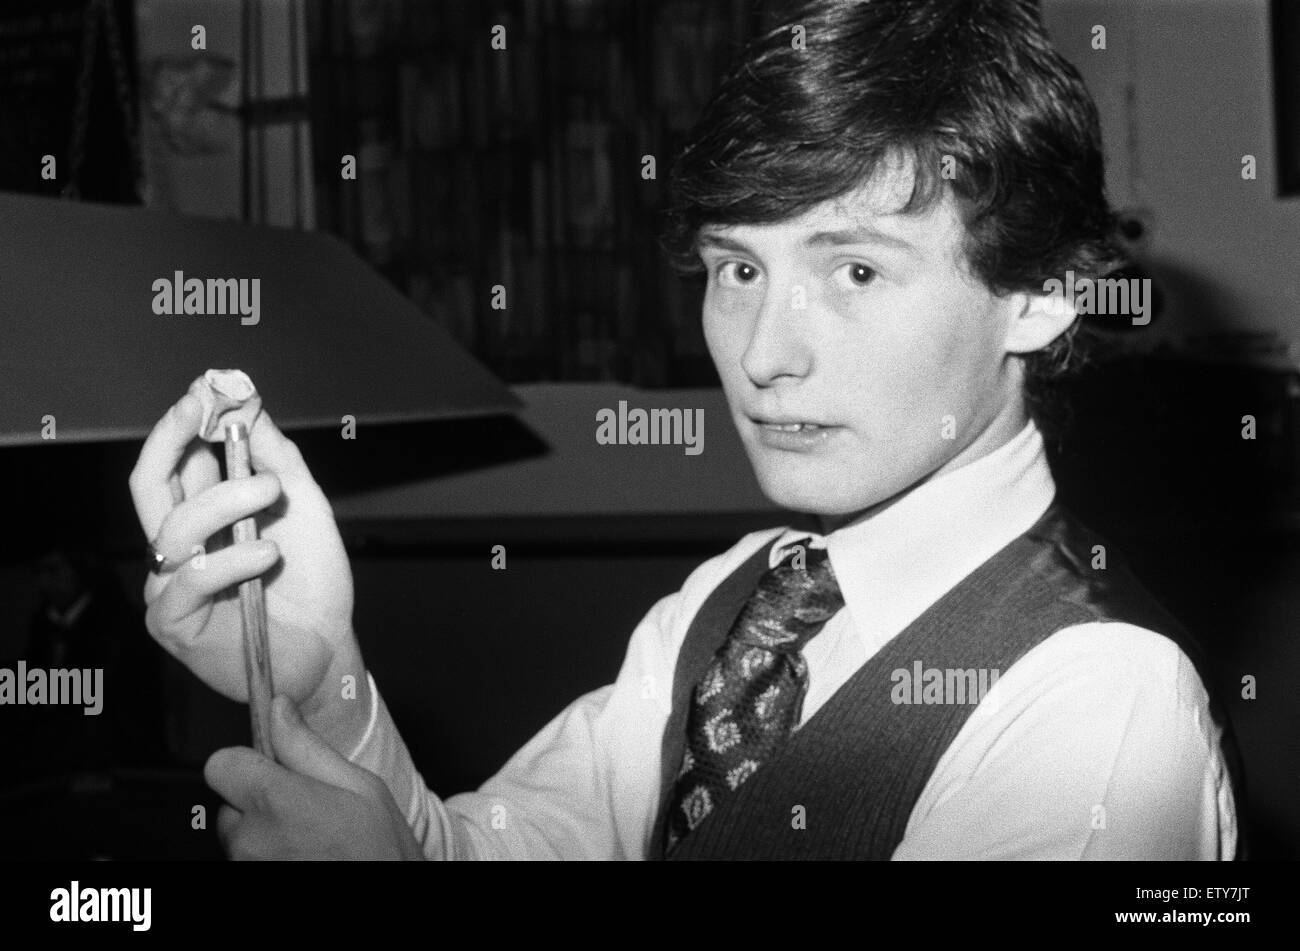 Seventeen year old snooker player Jimmy White playing at ...